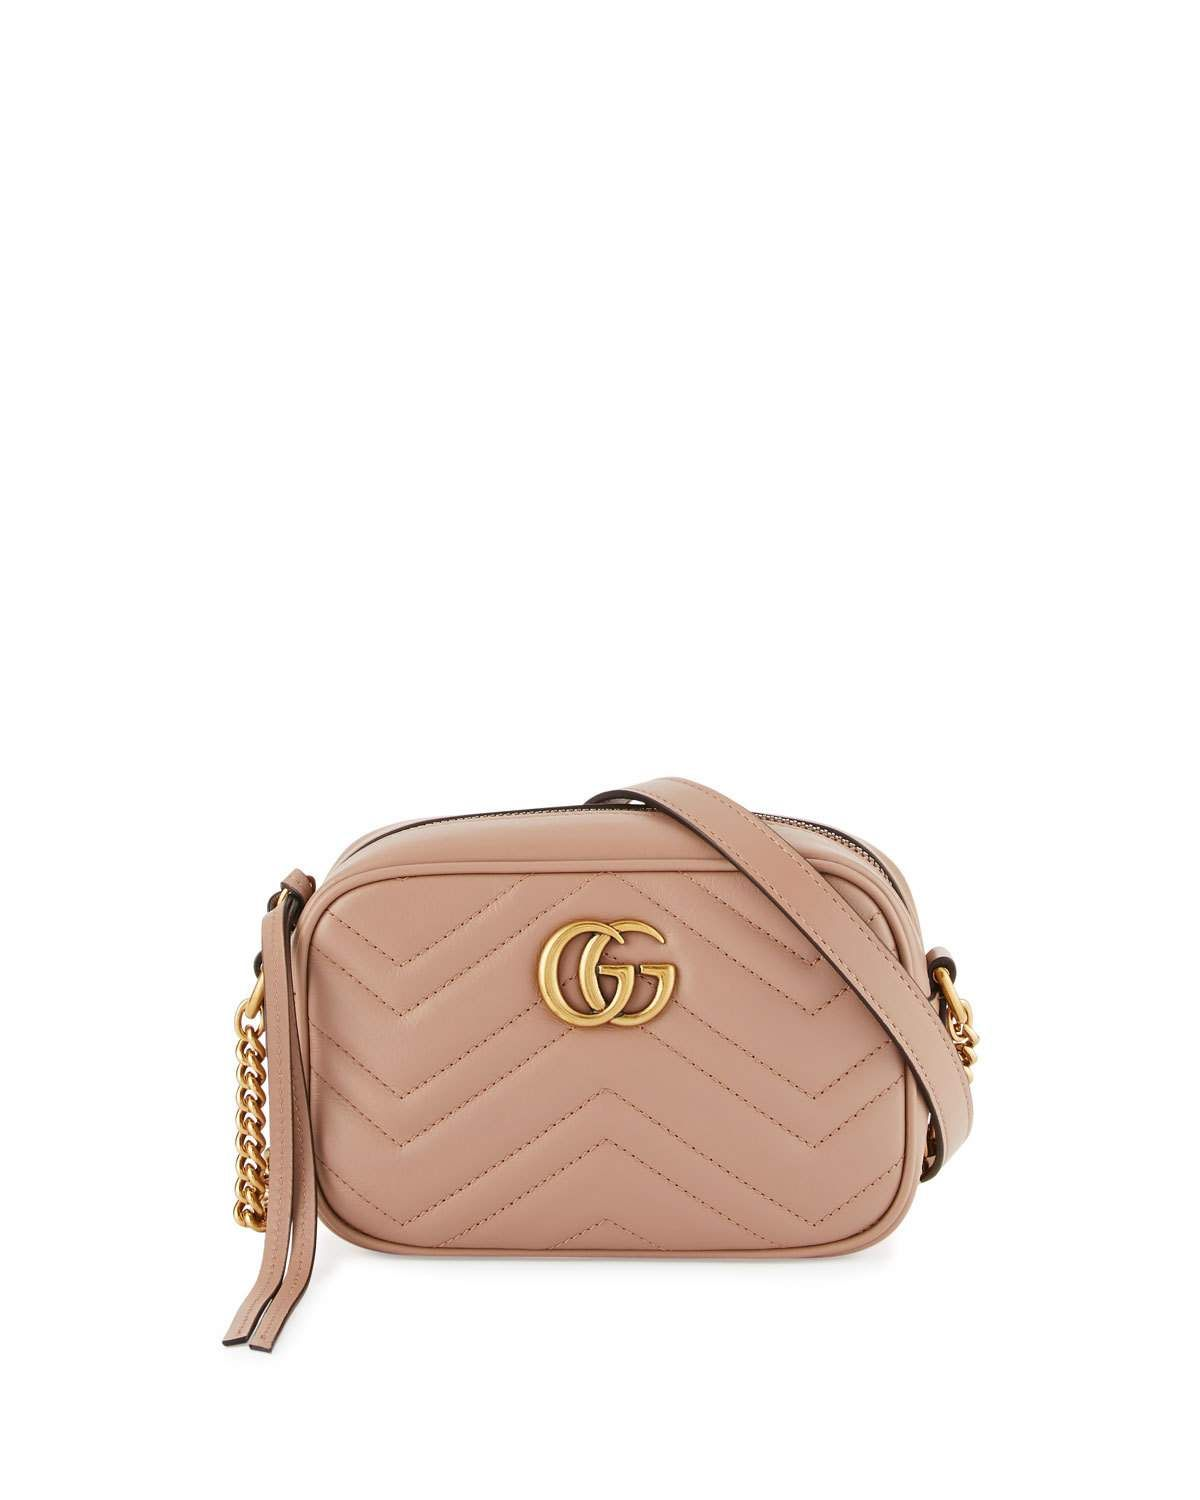 7c0952fec132 GG Marmont Mini Matelassé Camera Bag, Nude | B a g s | Gucci mini ...